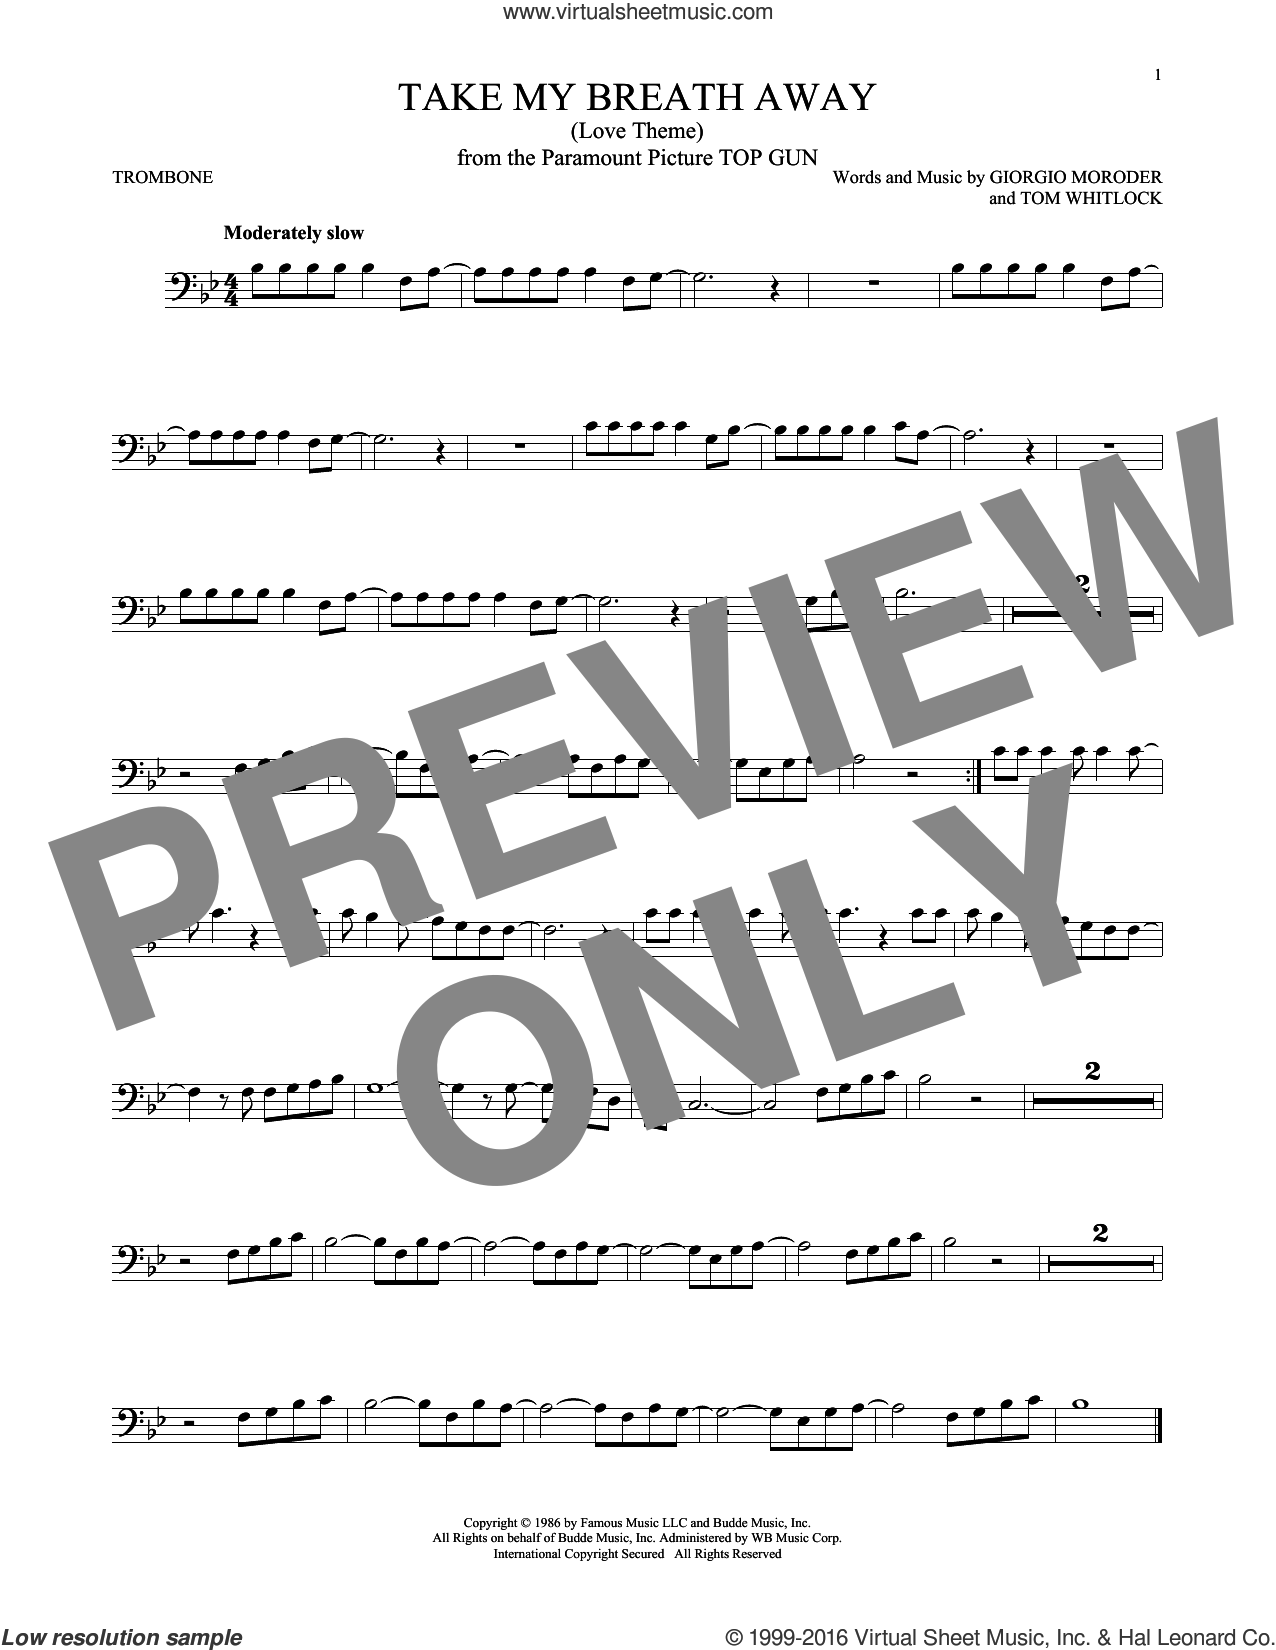 Take My Breath Away (Love Theme) sheet music for trombone solo by Giorgio Moroder, Irving Berlin, Jessica Simpson and Tom Whitlock, intermediate skill level